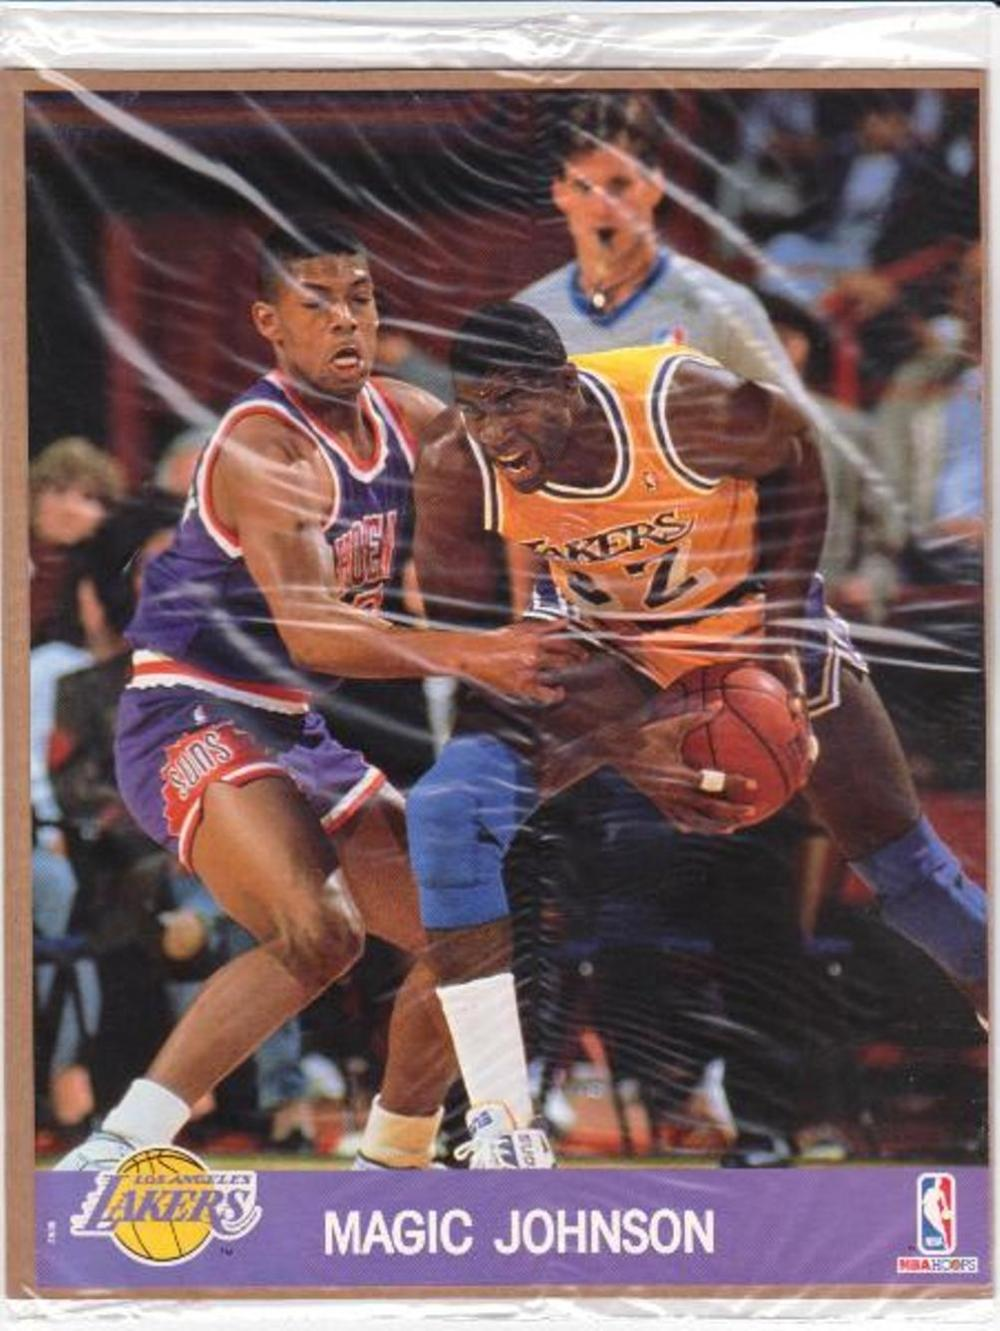 Lot of 20 1990 Hoops Photos MAGIC JOHNSON 8x10 Photo/Cards - Sealed